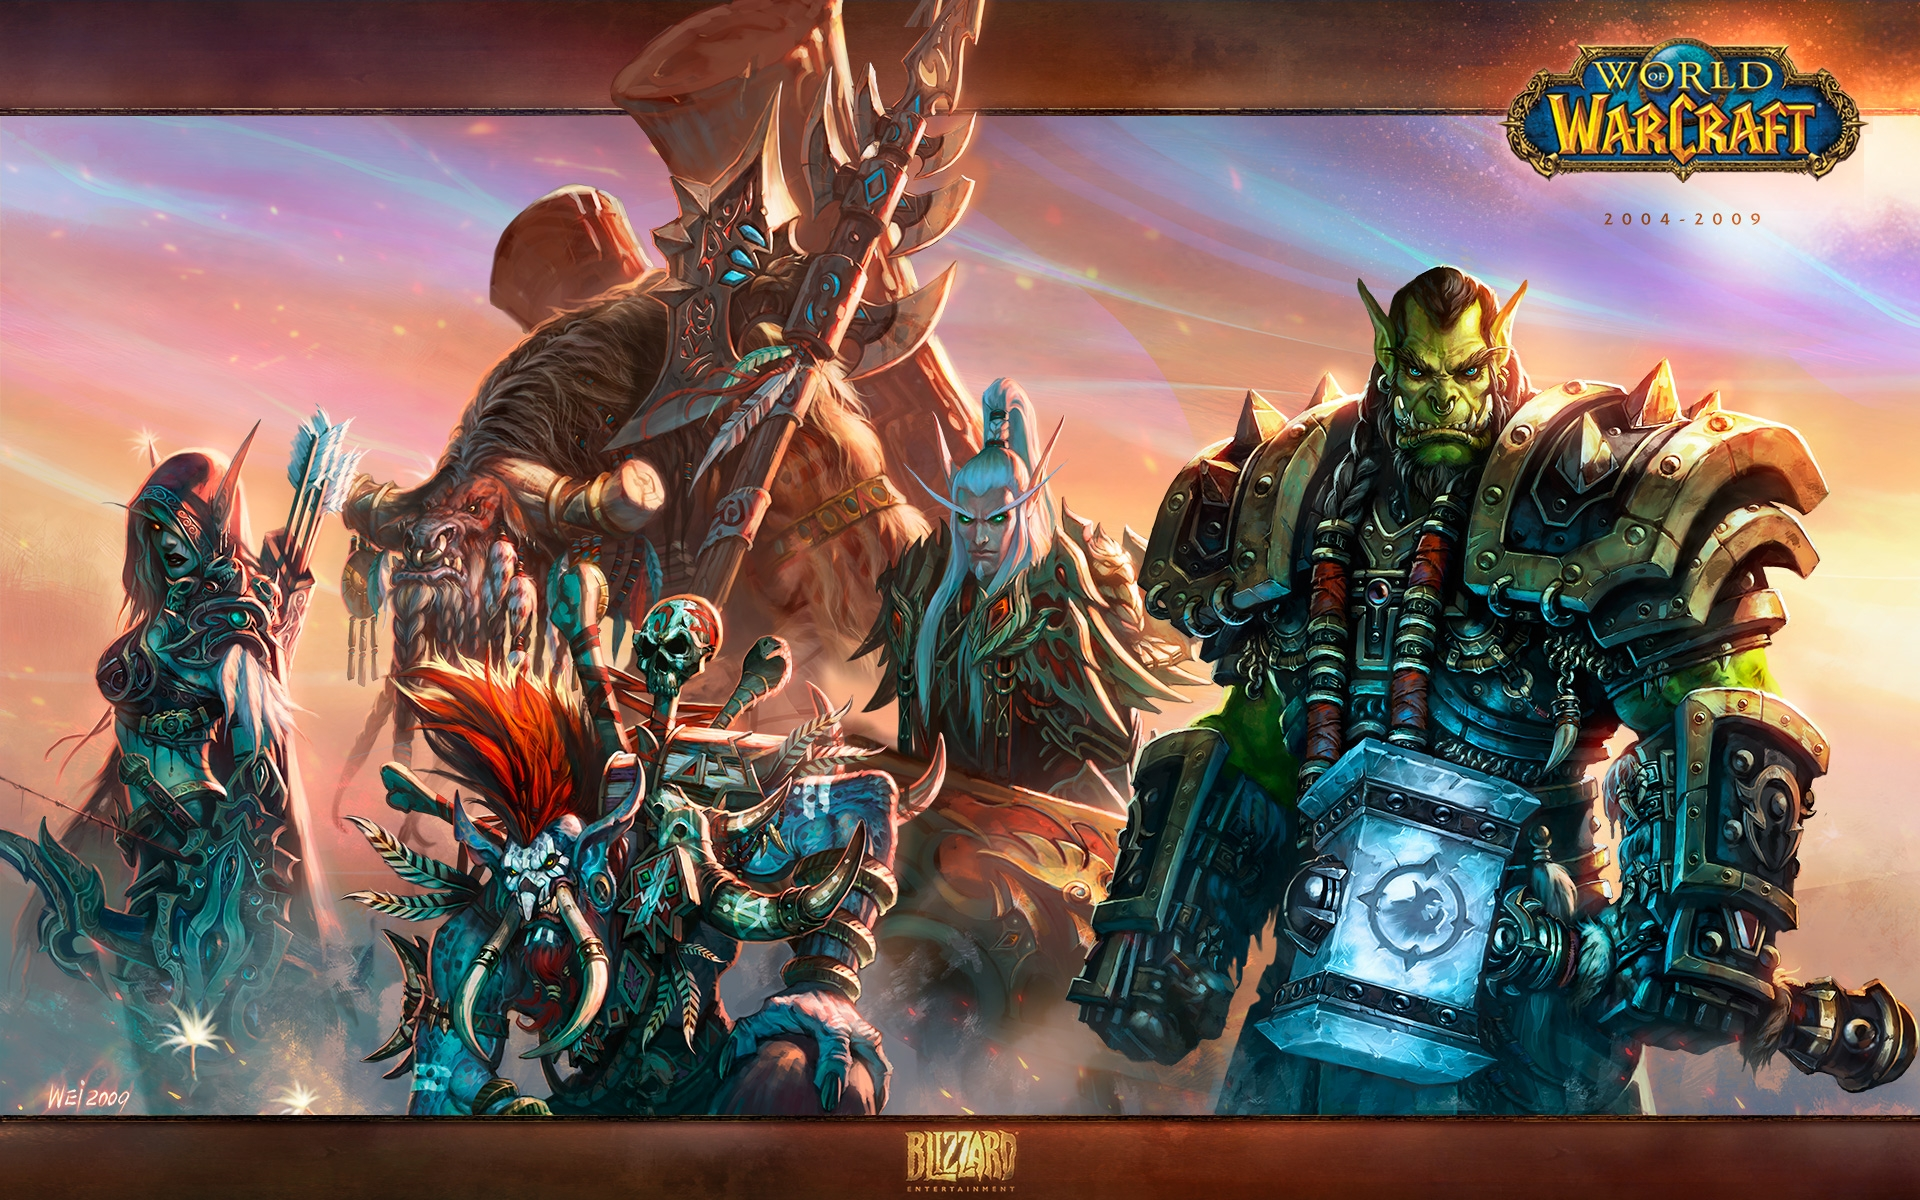 World Of Warcraft Battlecry Horde Monitor Wallpapers World Of